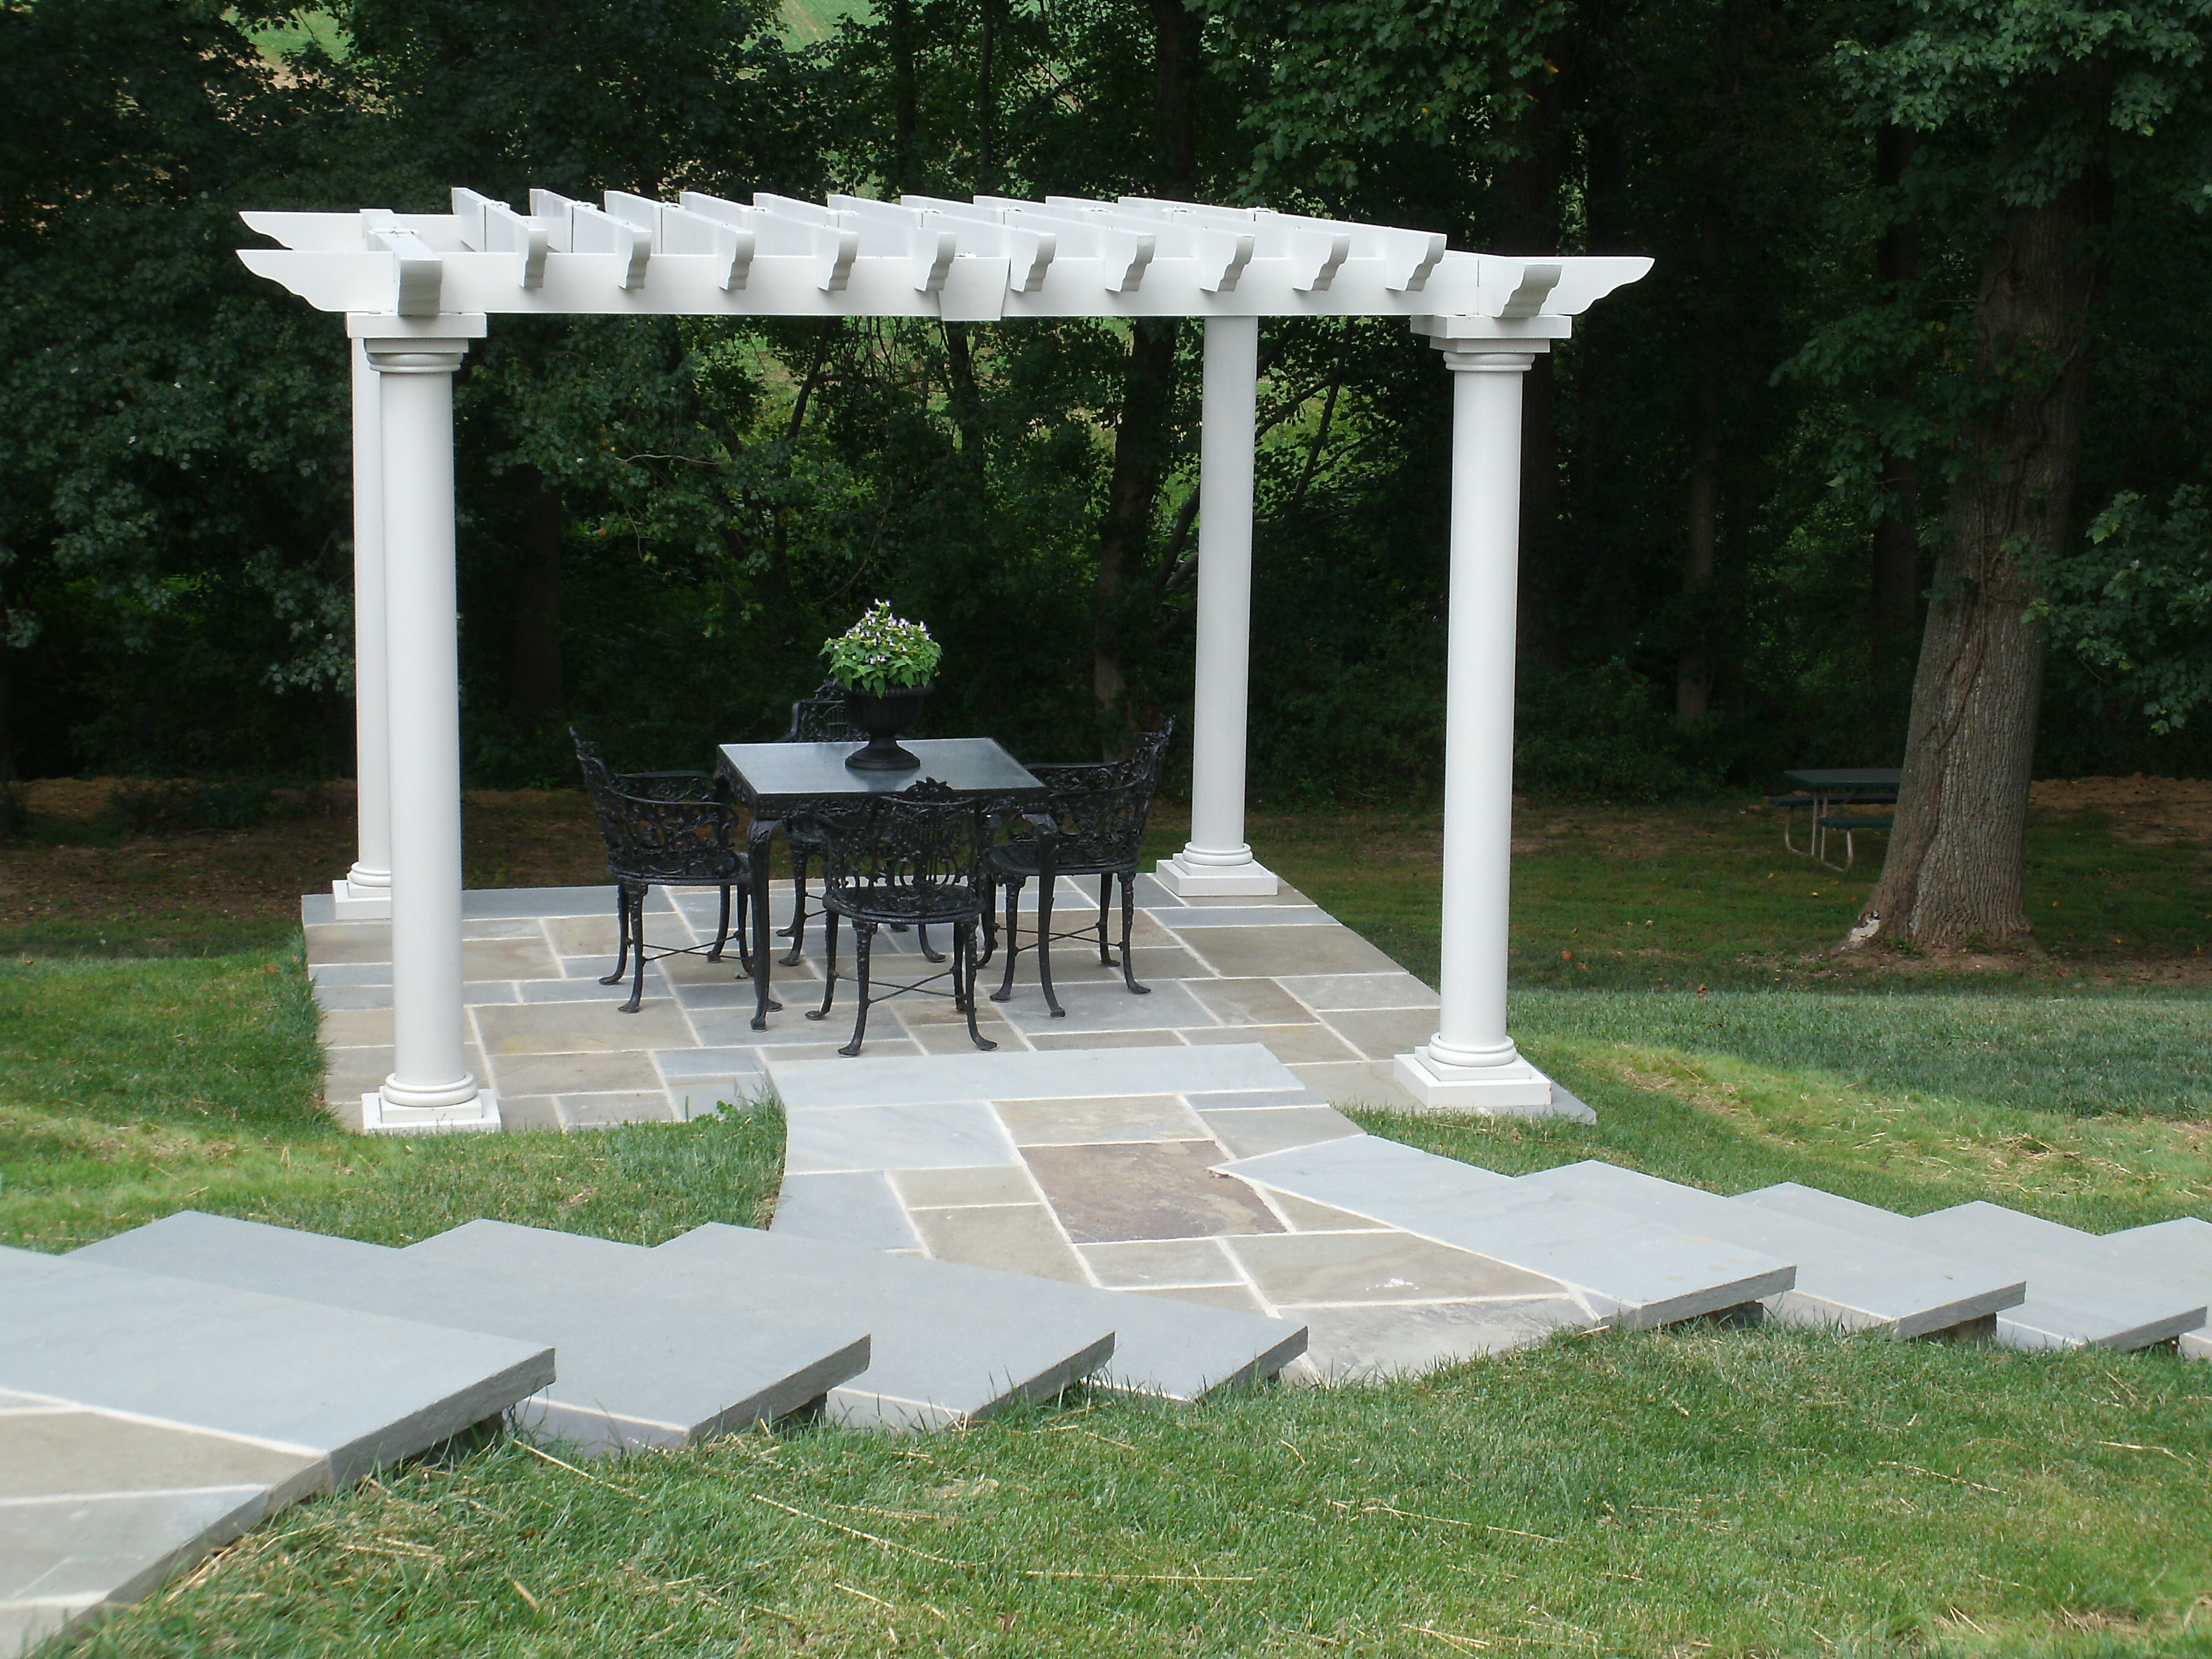 Baltimore Premier Masonry, Hardscaping and Landscape Design